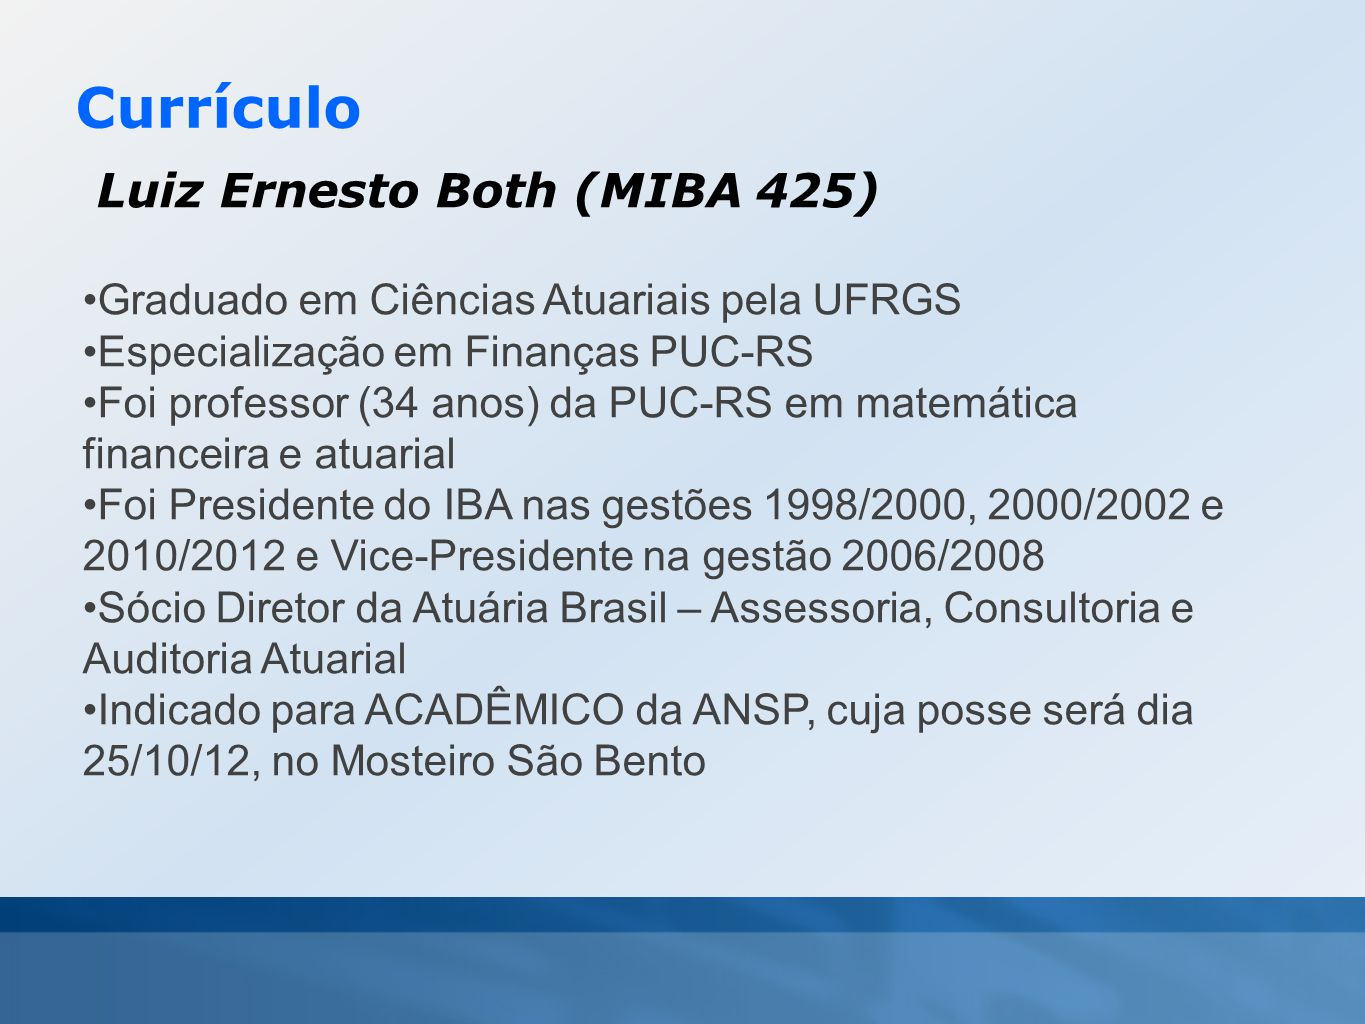 Currículo Luiz Ernesto Both (MIBA 425)